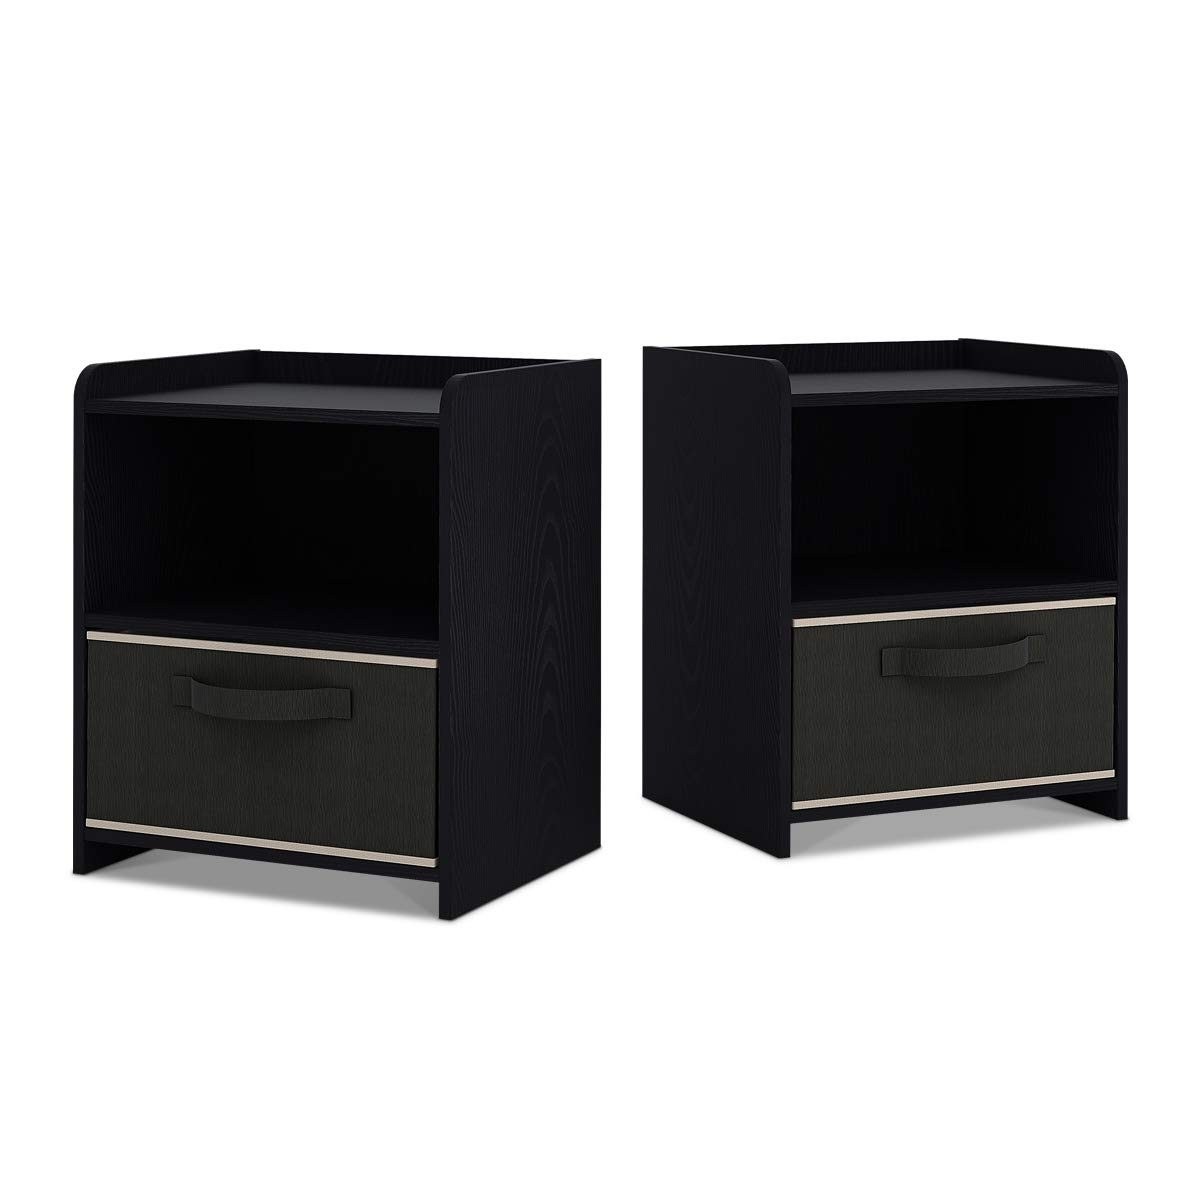 DEVAISE 2-Shelf Nightstand, Cute Bedside with Drawer, Set of 2, Black